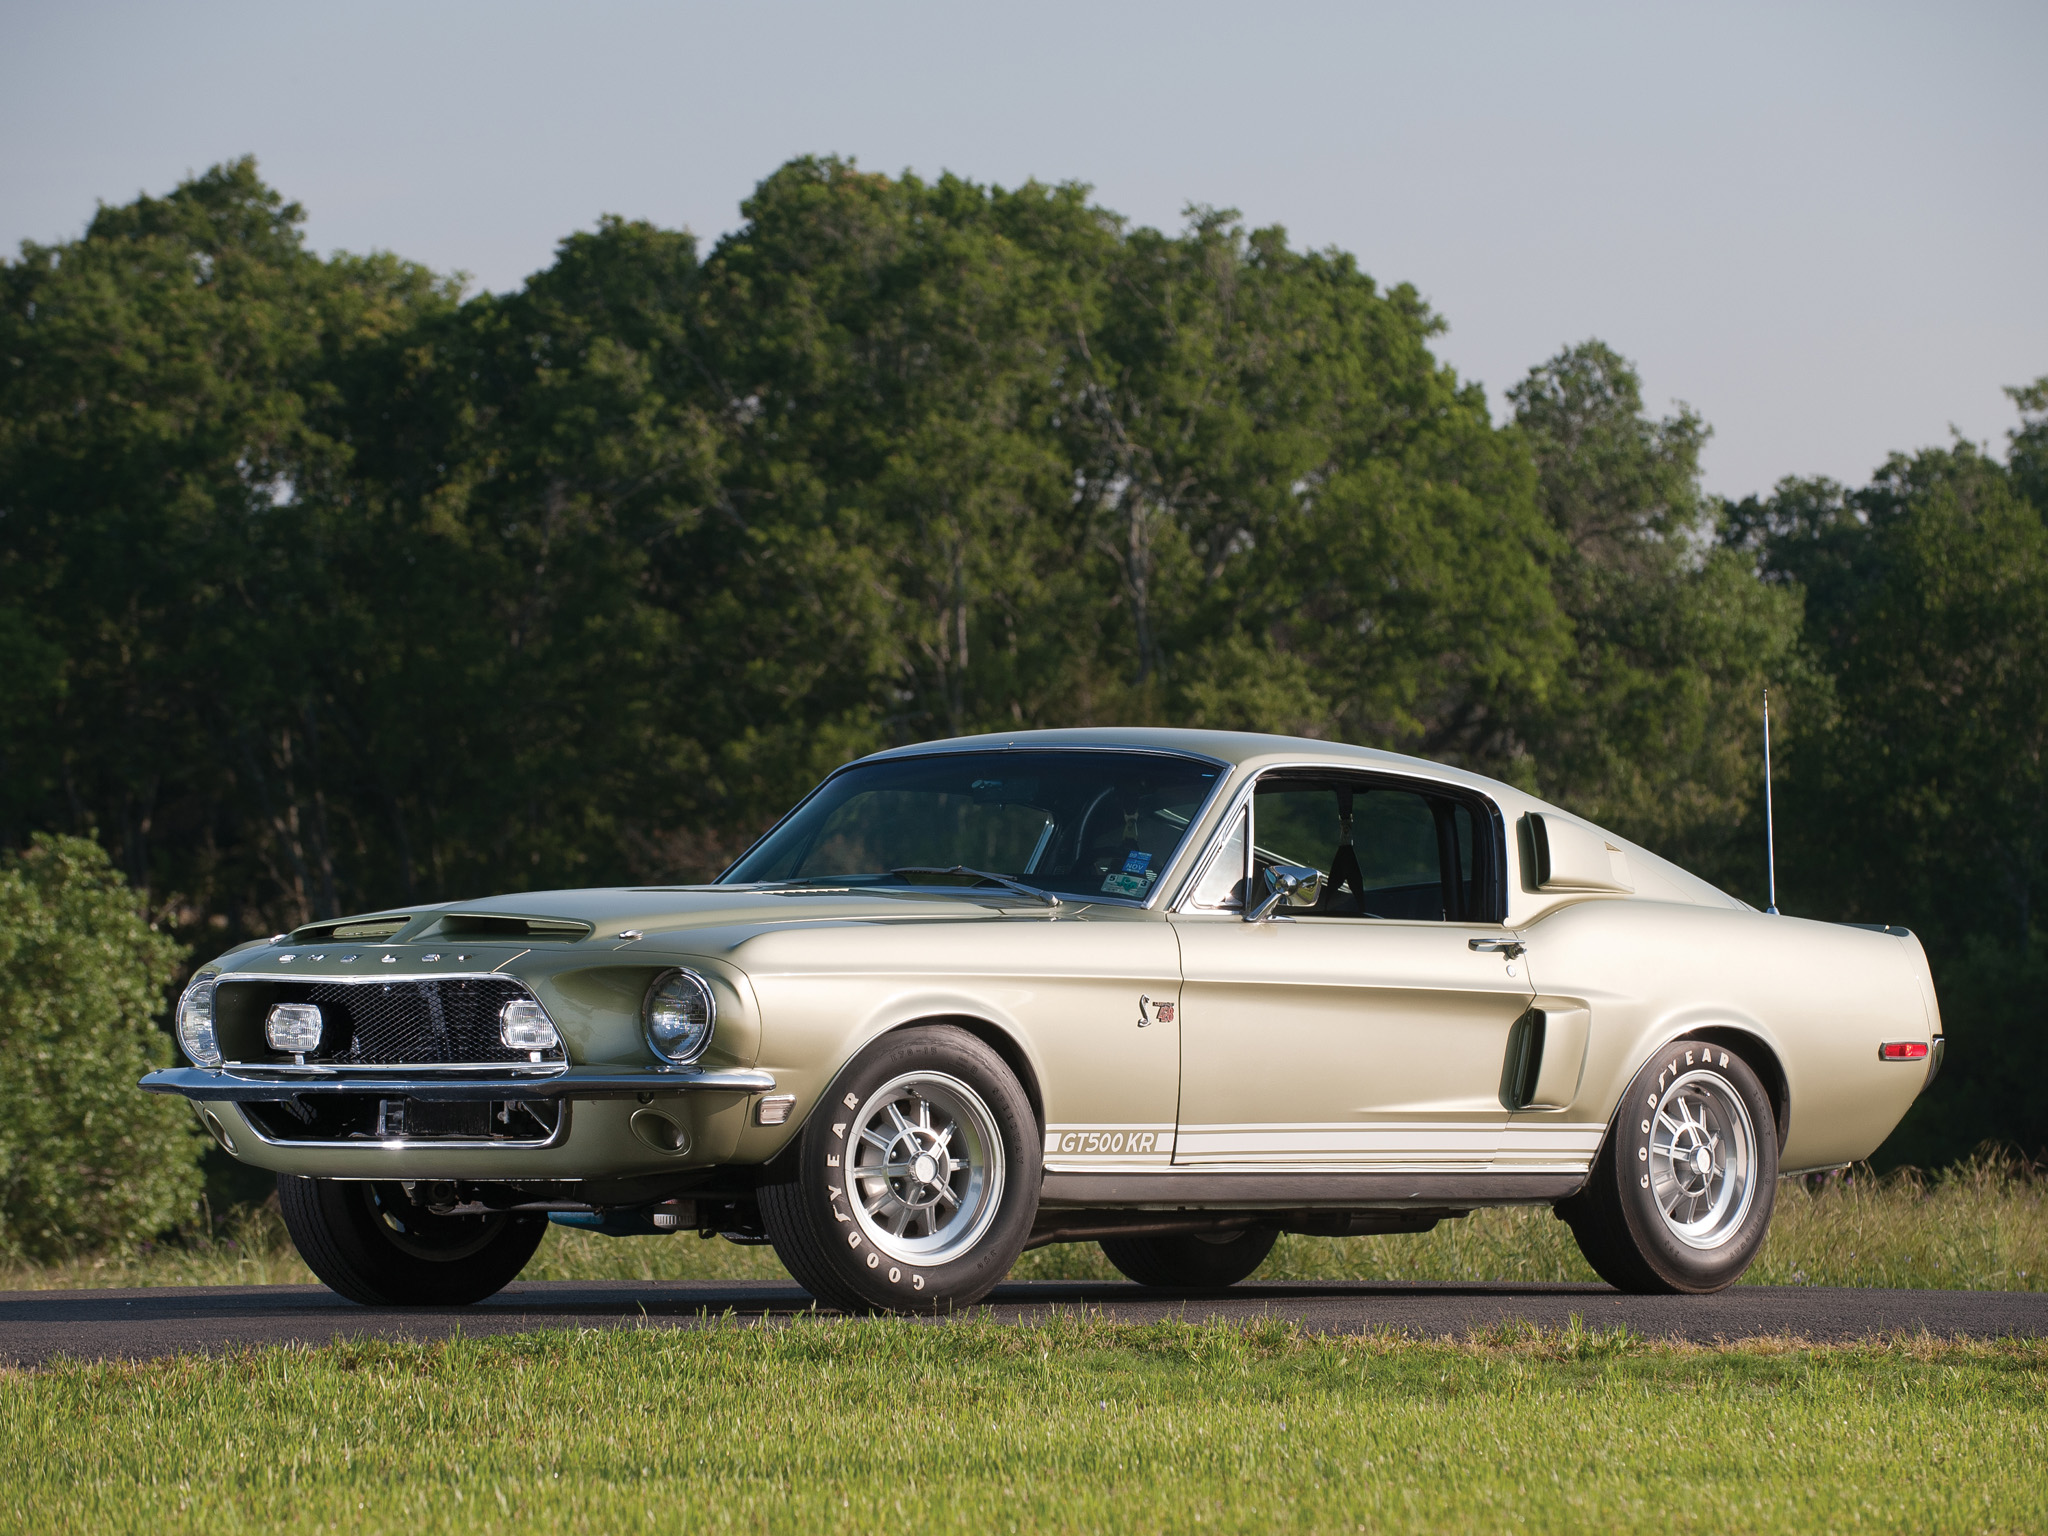 1968 Shelby GT500-KR gt500 ford mustang muscle classic fw ...